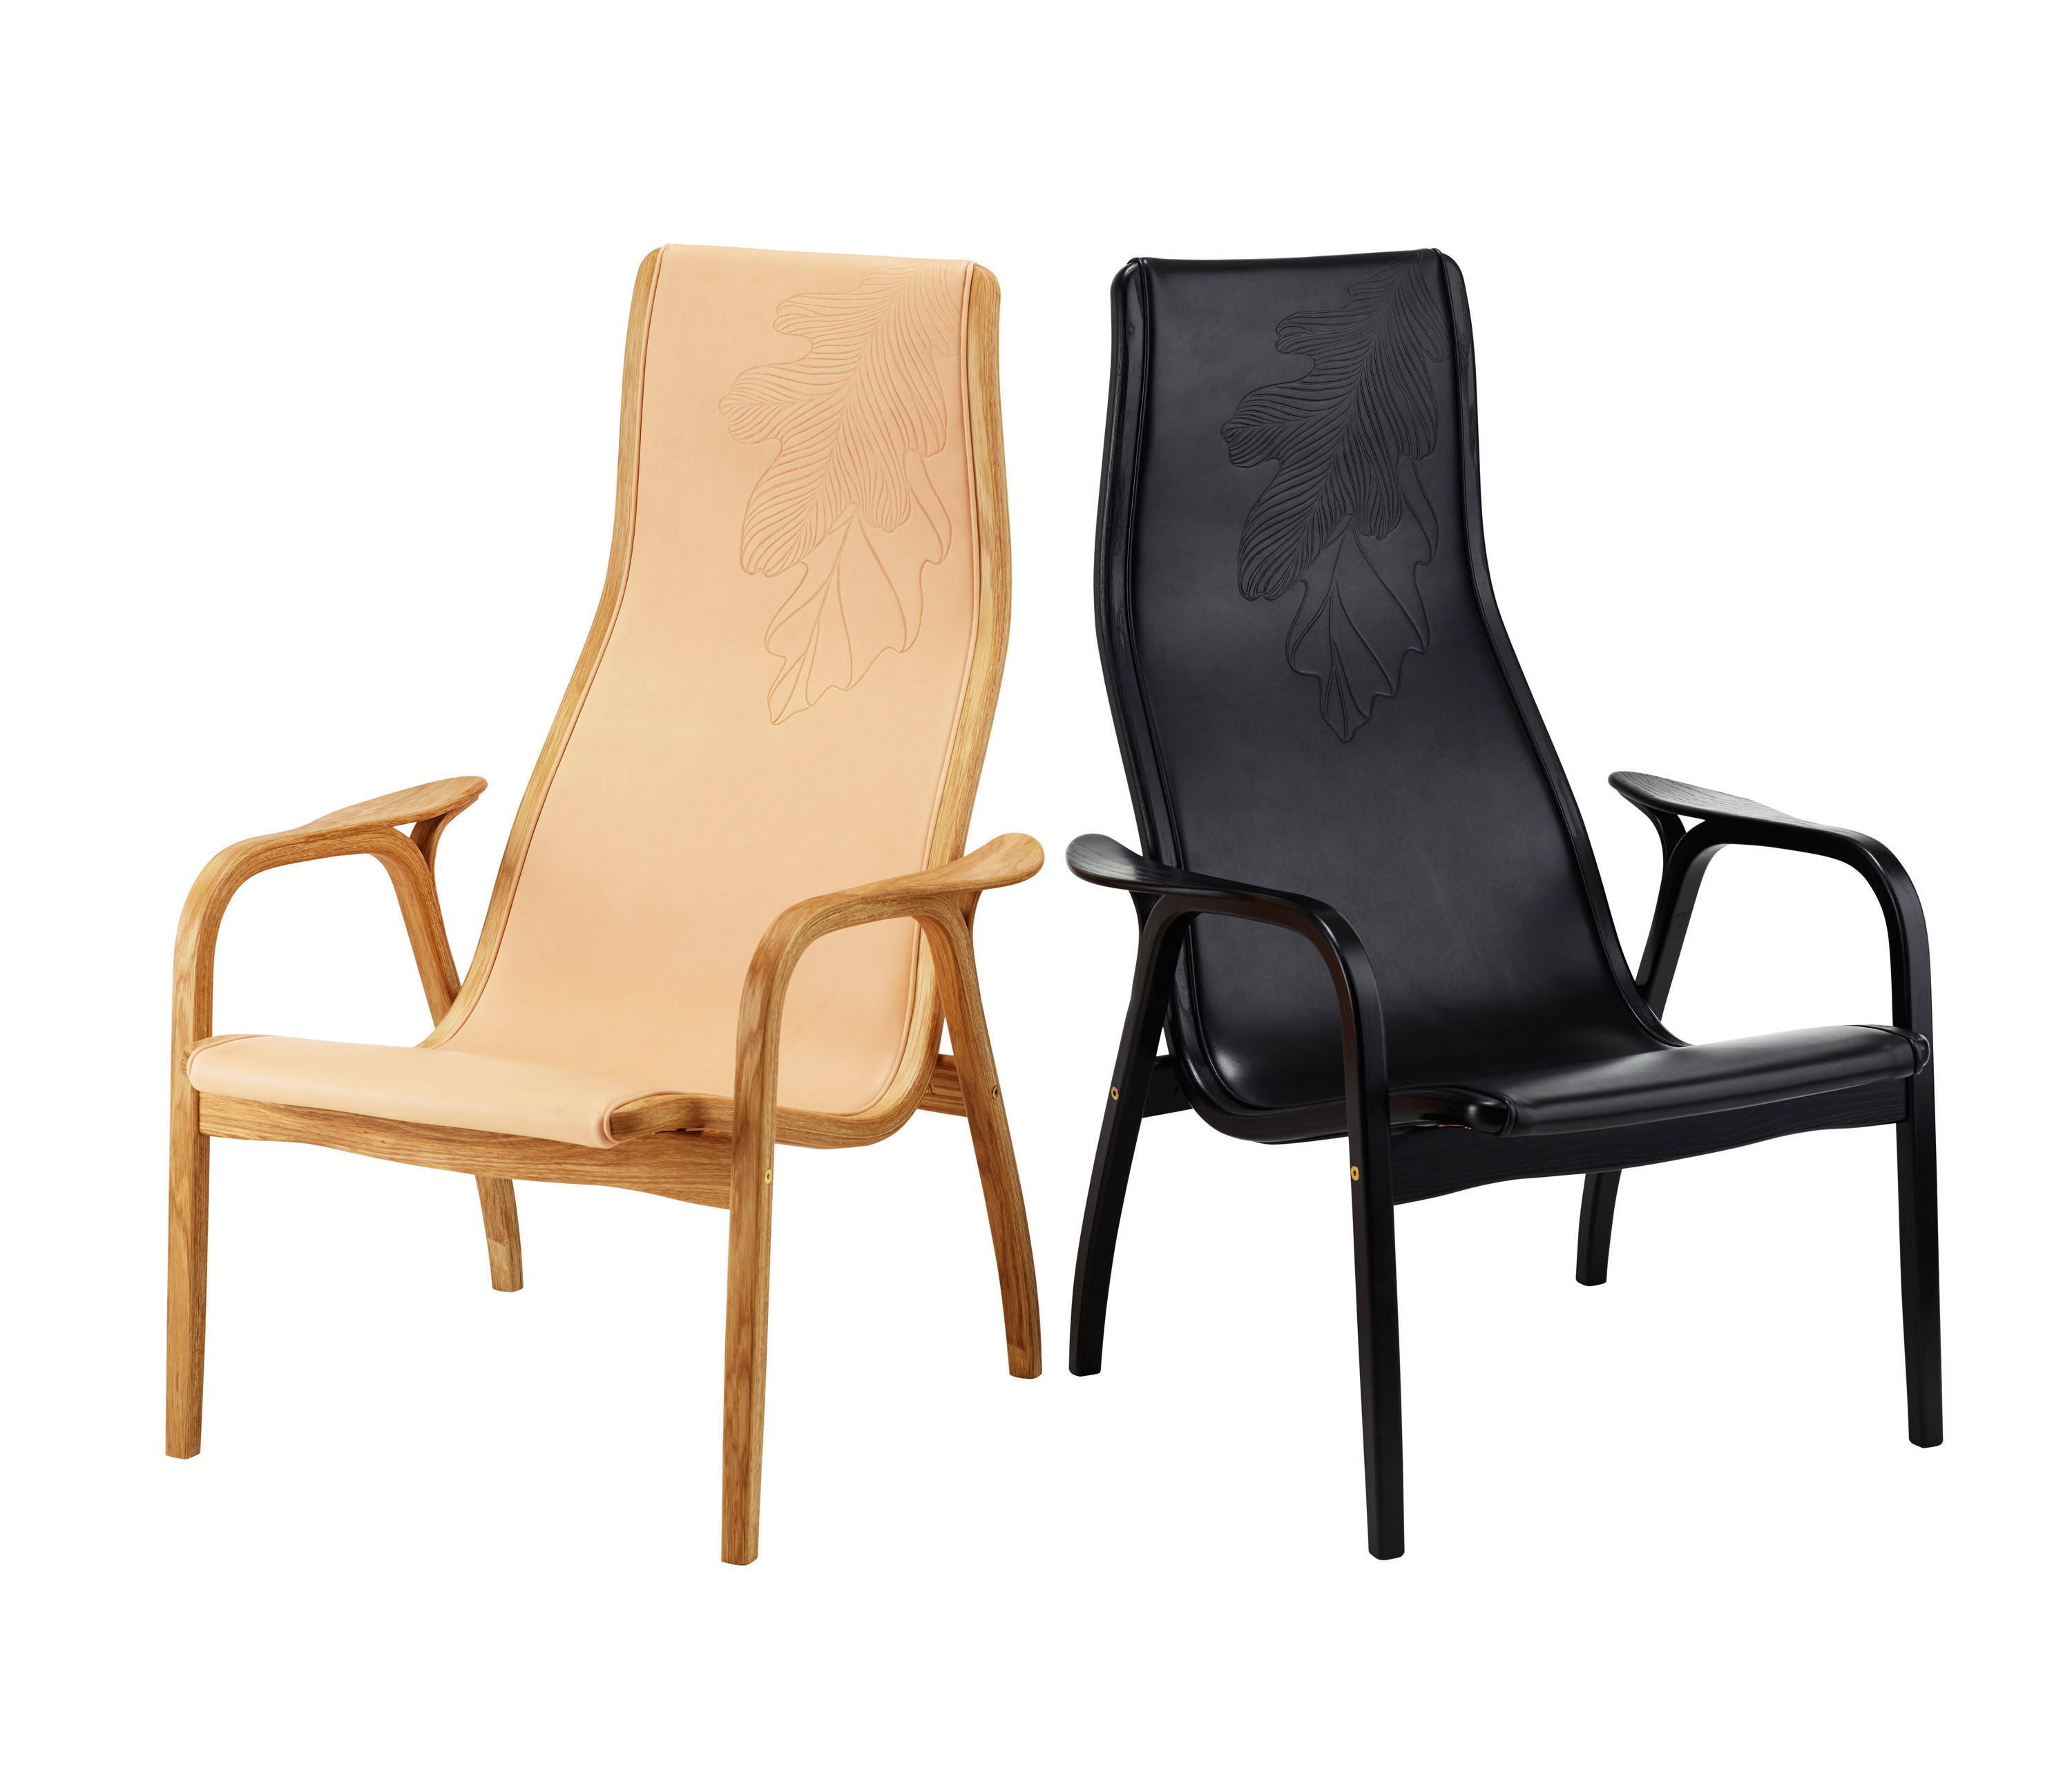 Swedese Lamino Sessel Lamino Easy Chair Nature Sessel Von Swedese Architonic